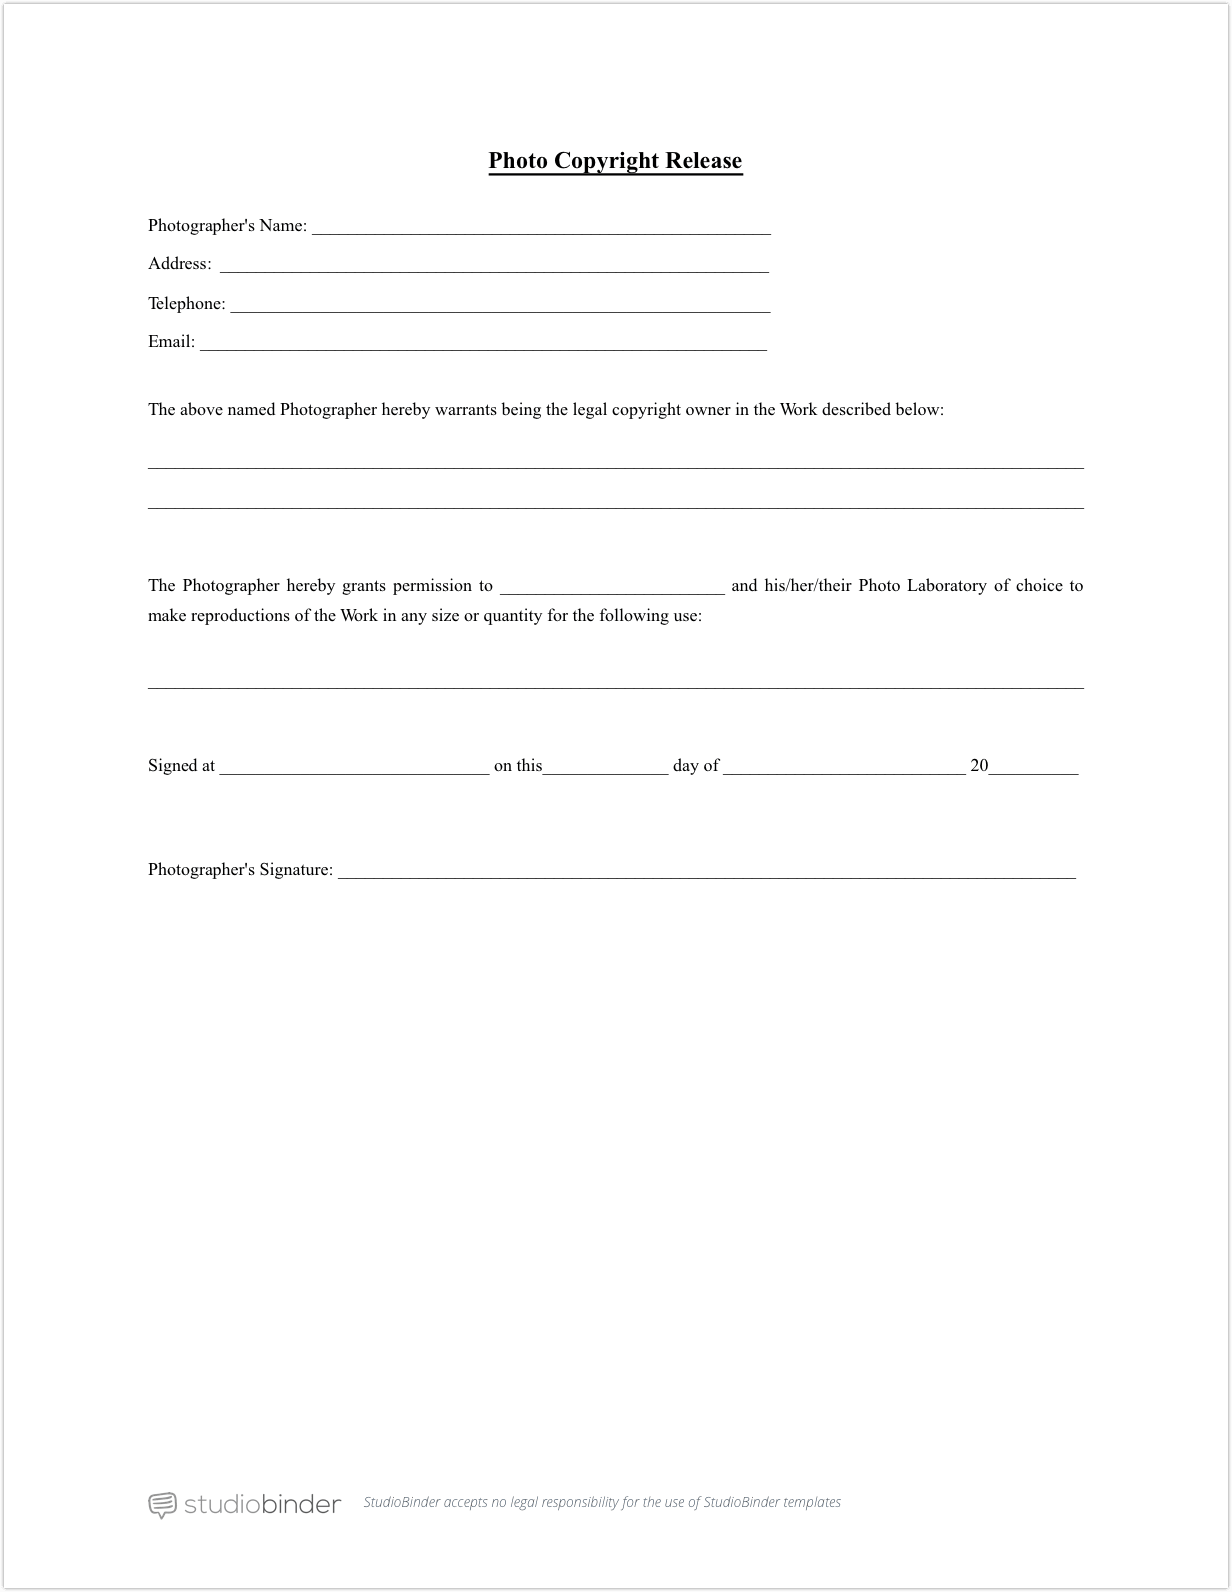 Download free photo release form template studiobinder for Photographic release form template